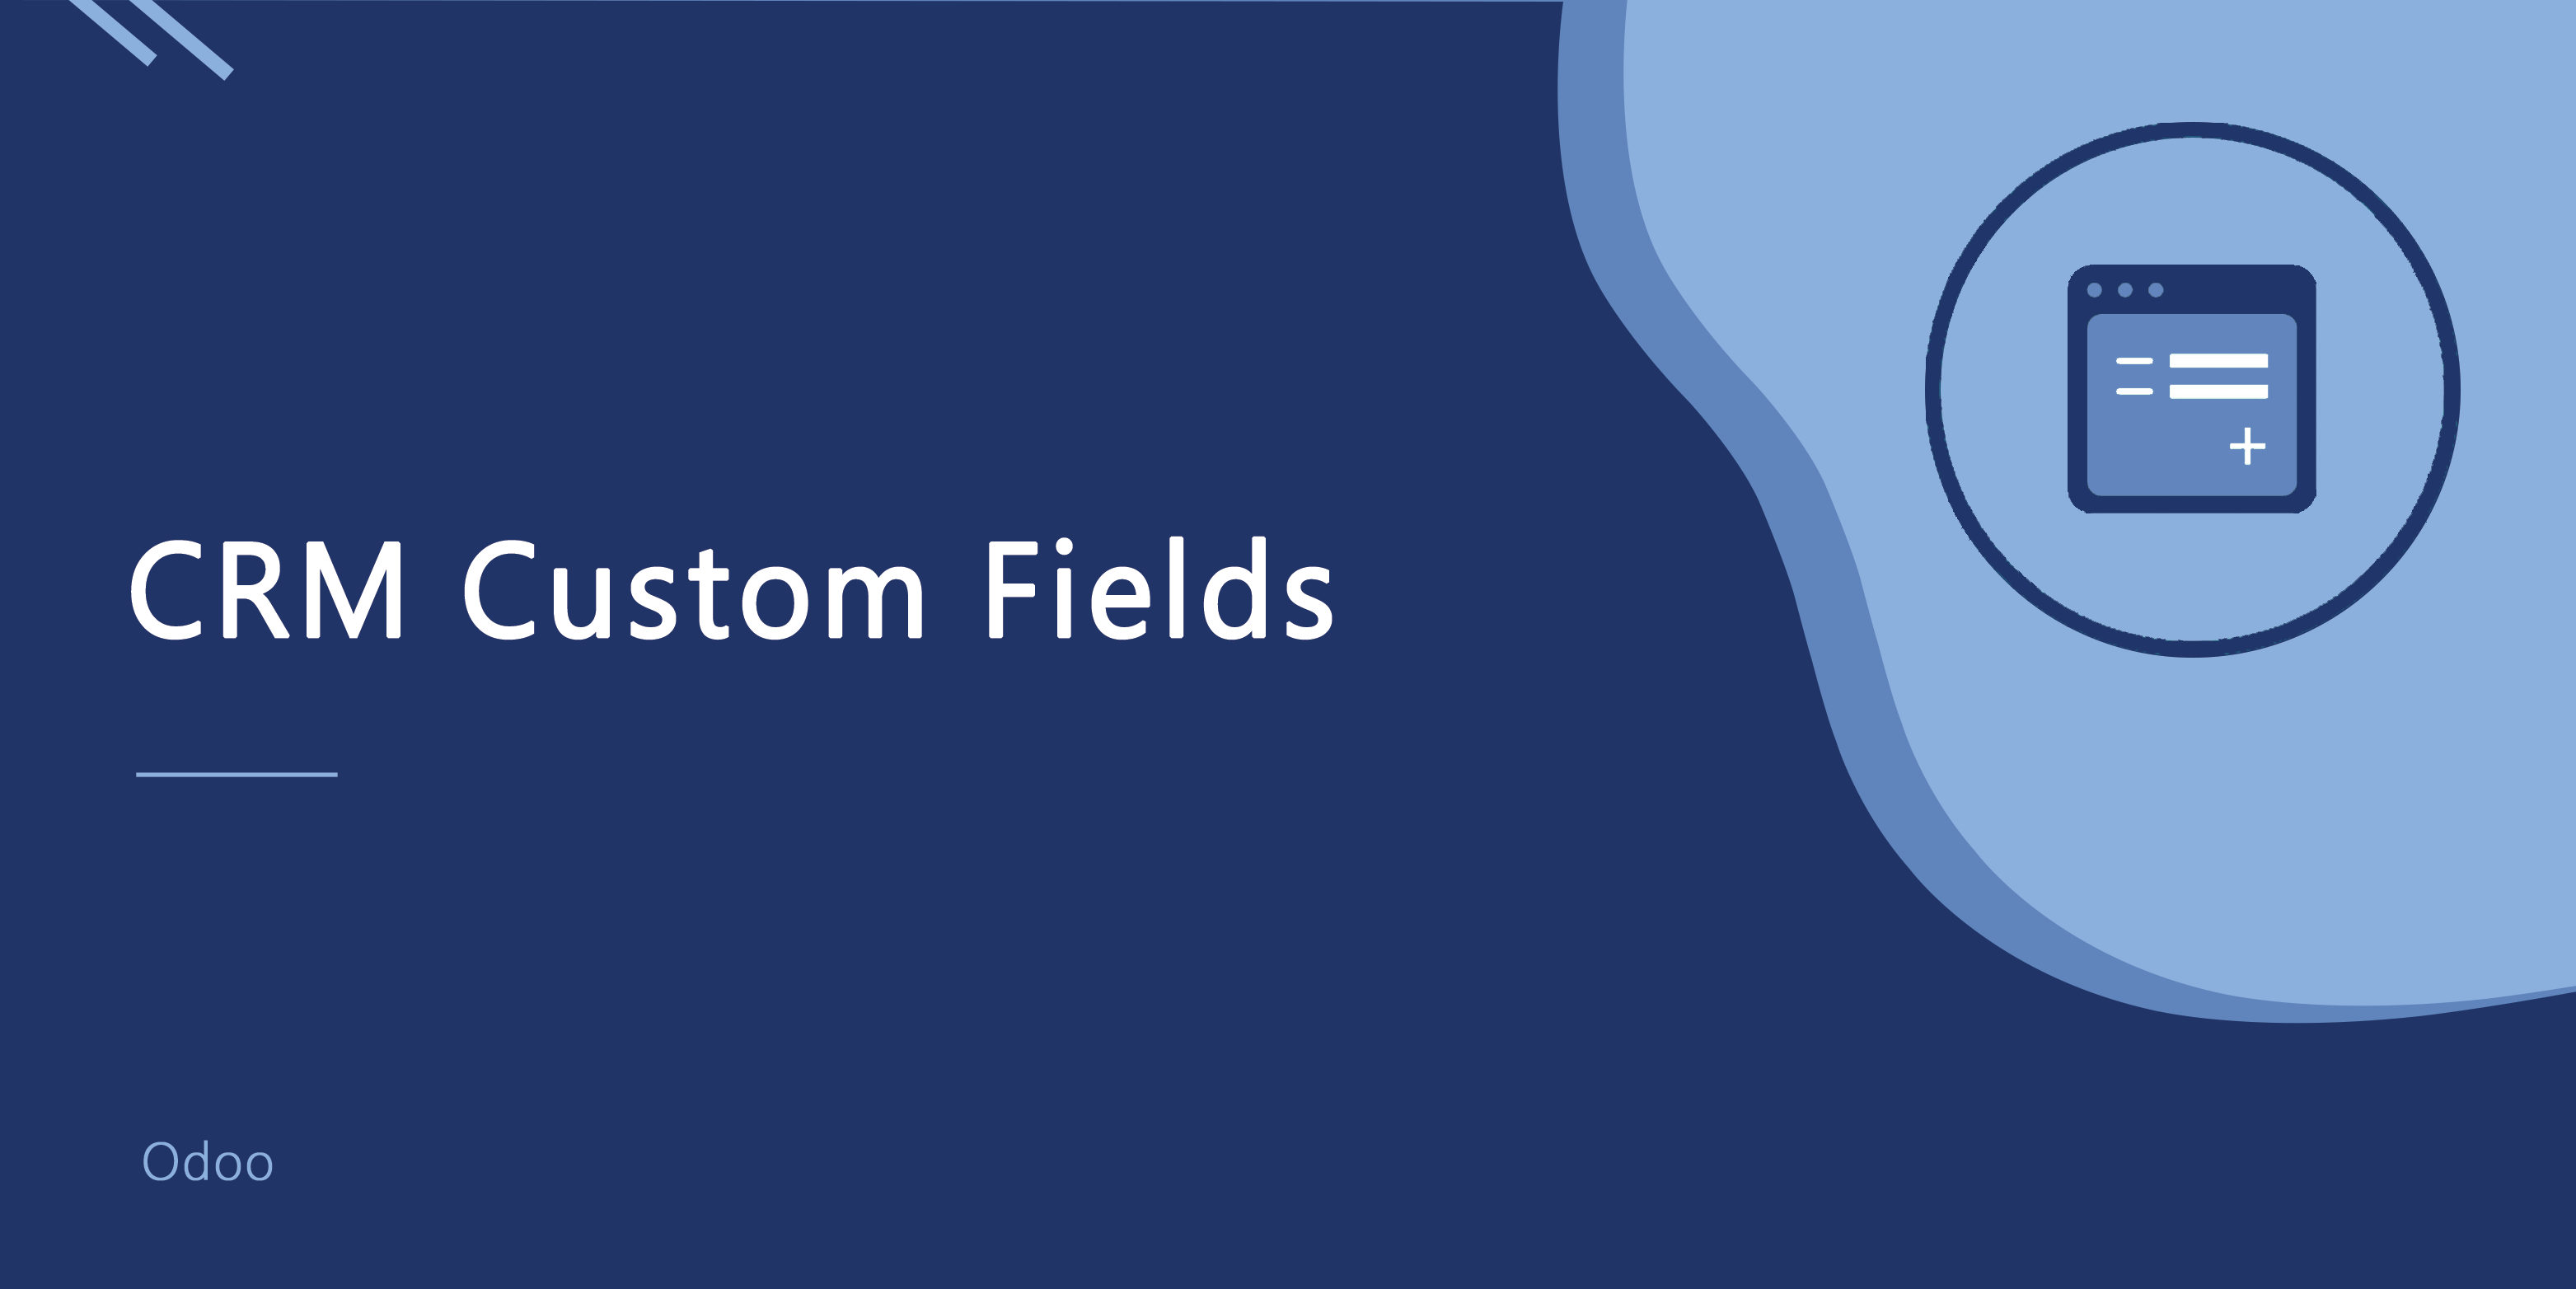 CRM Custom Fields